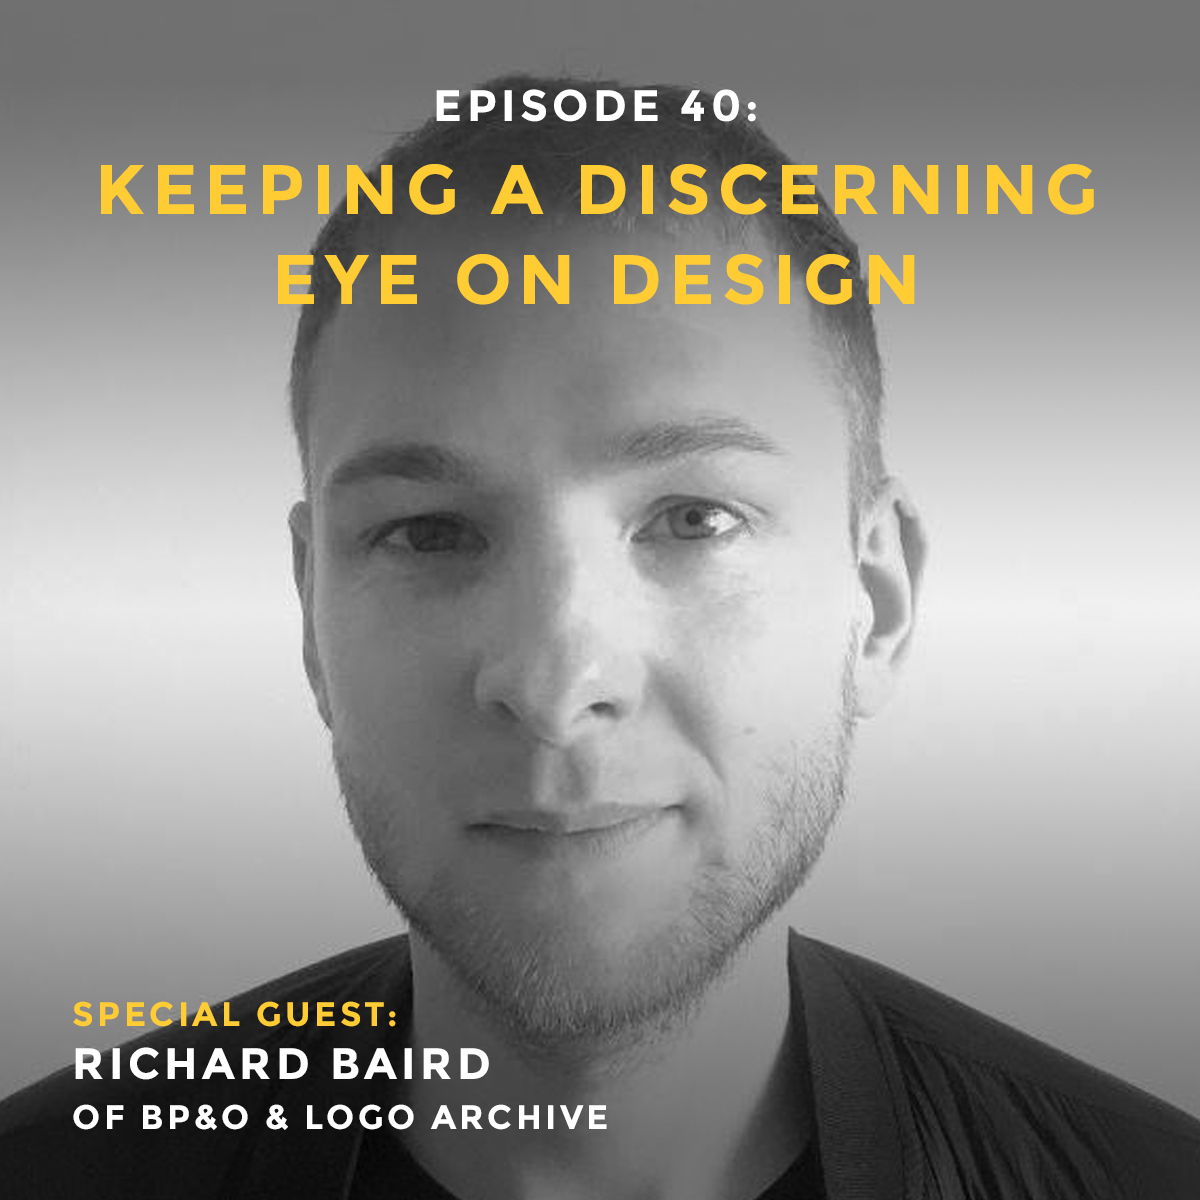 Design podcast interview with Richard Baird of Branding, Packaging & Opinion design blog